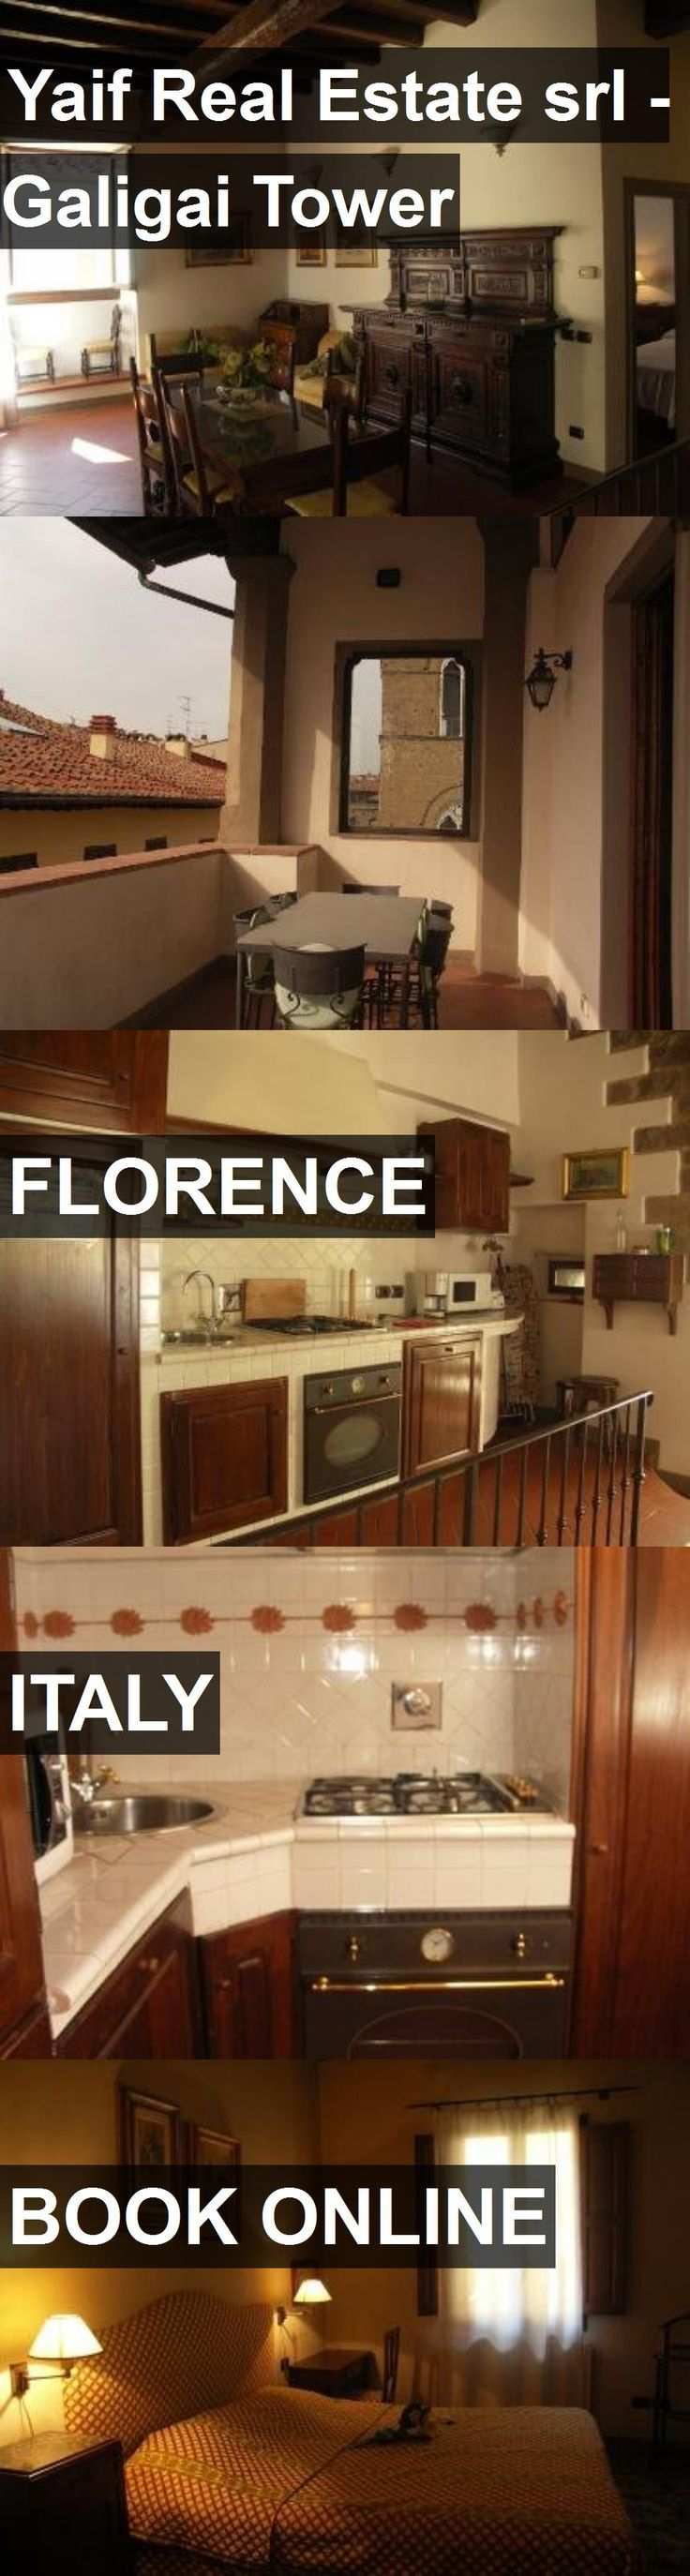 Hotel Yaif Real Estate srl - Galigai Tower in Florence, Italy. For more information, photos, reviews and best prices please follow the link. #Italy #Florence #YaifRealEstatesrl-GaligaiTower #hotel #travel #vacation